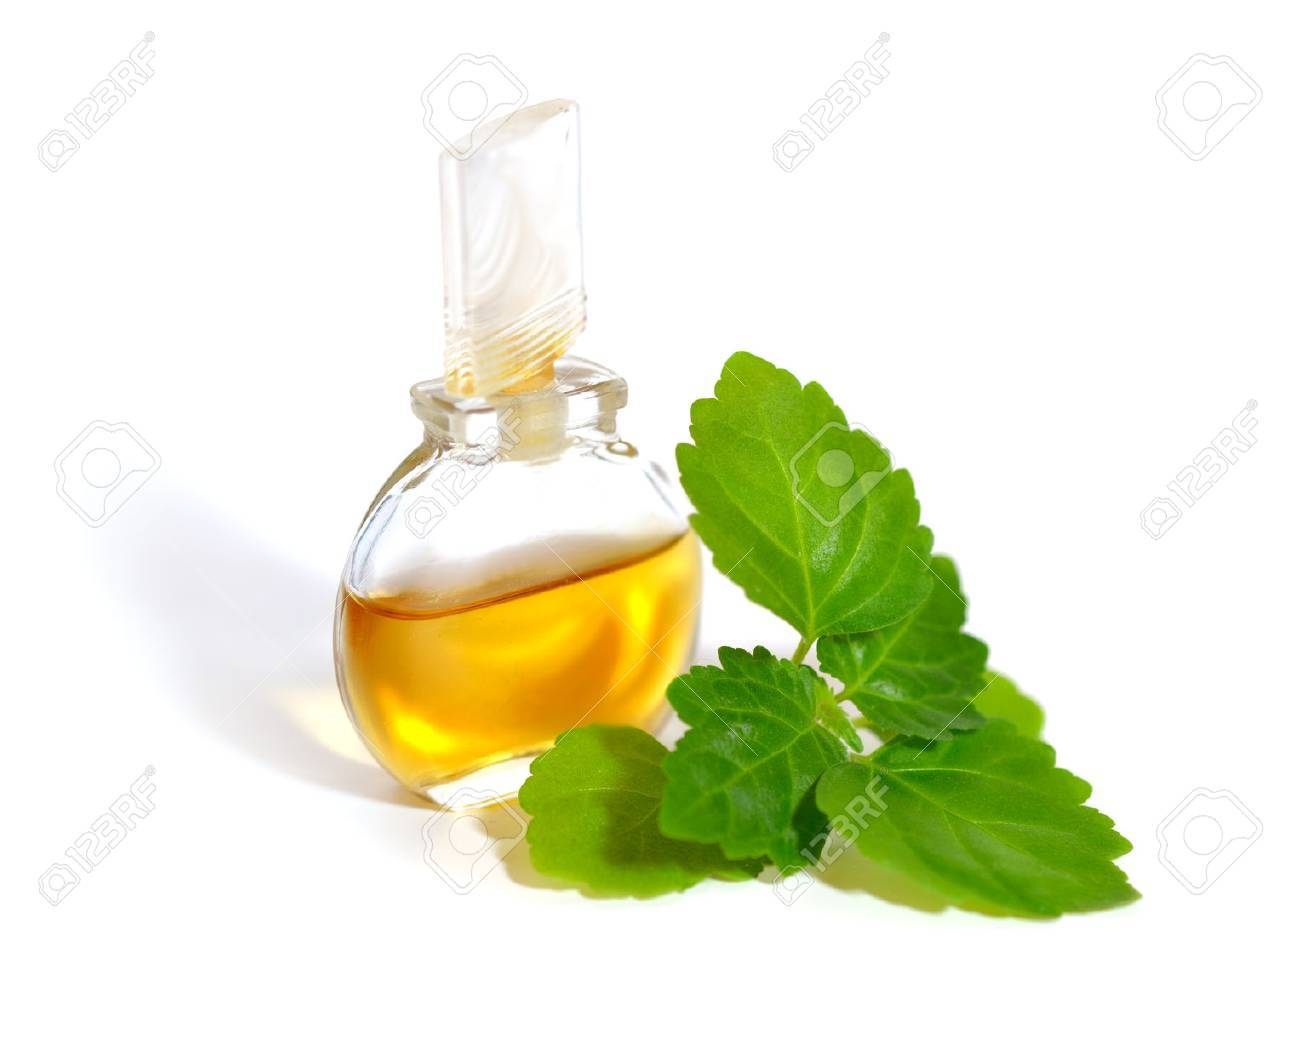 Patchouli sprig with essential oil. Isolated on white background. - 61672049